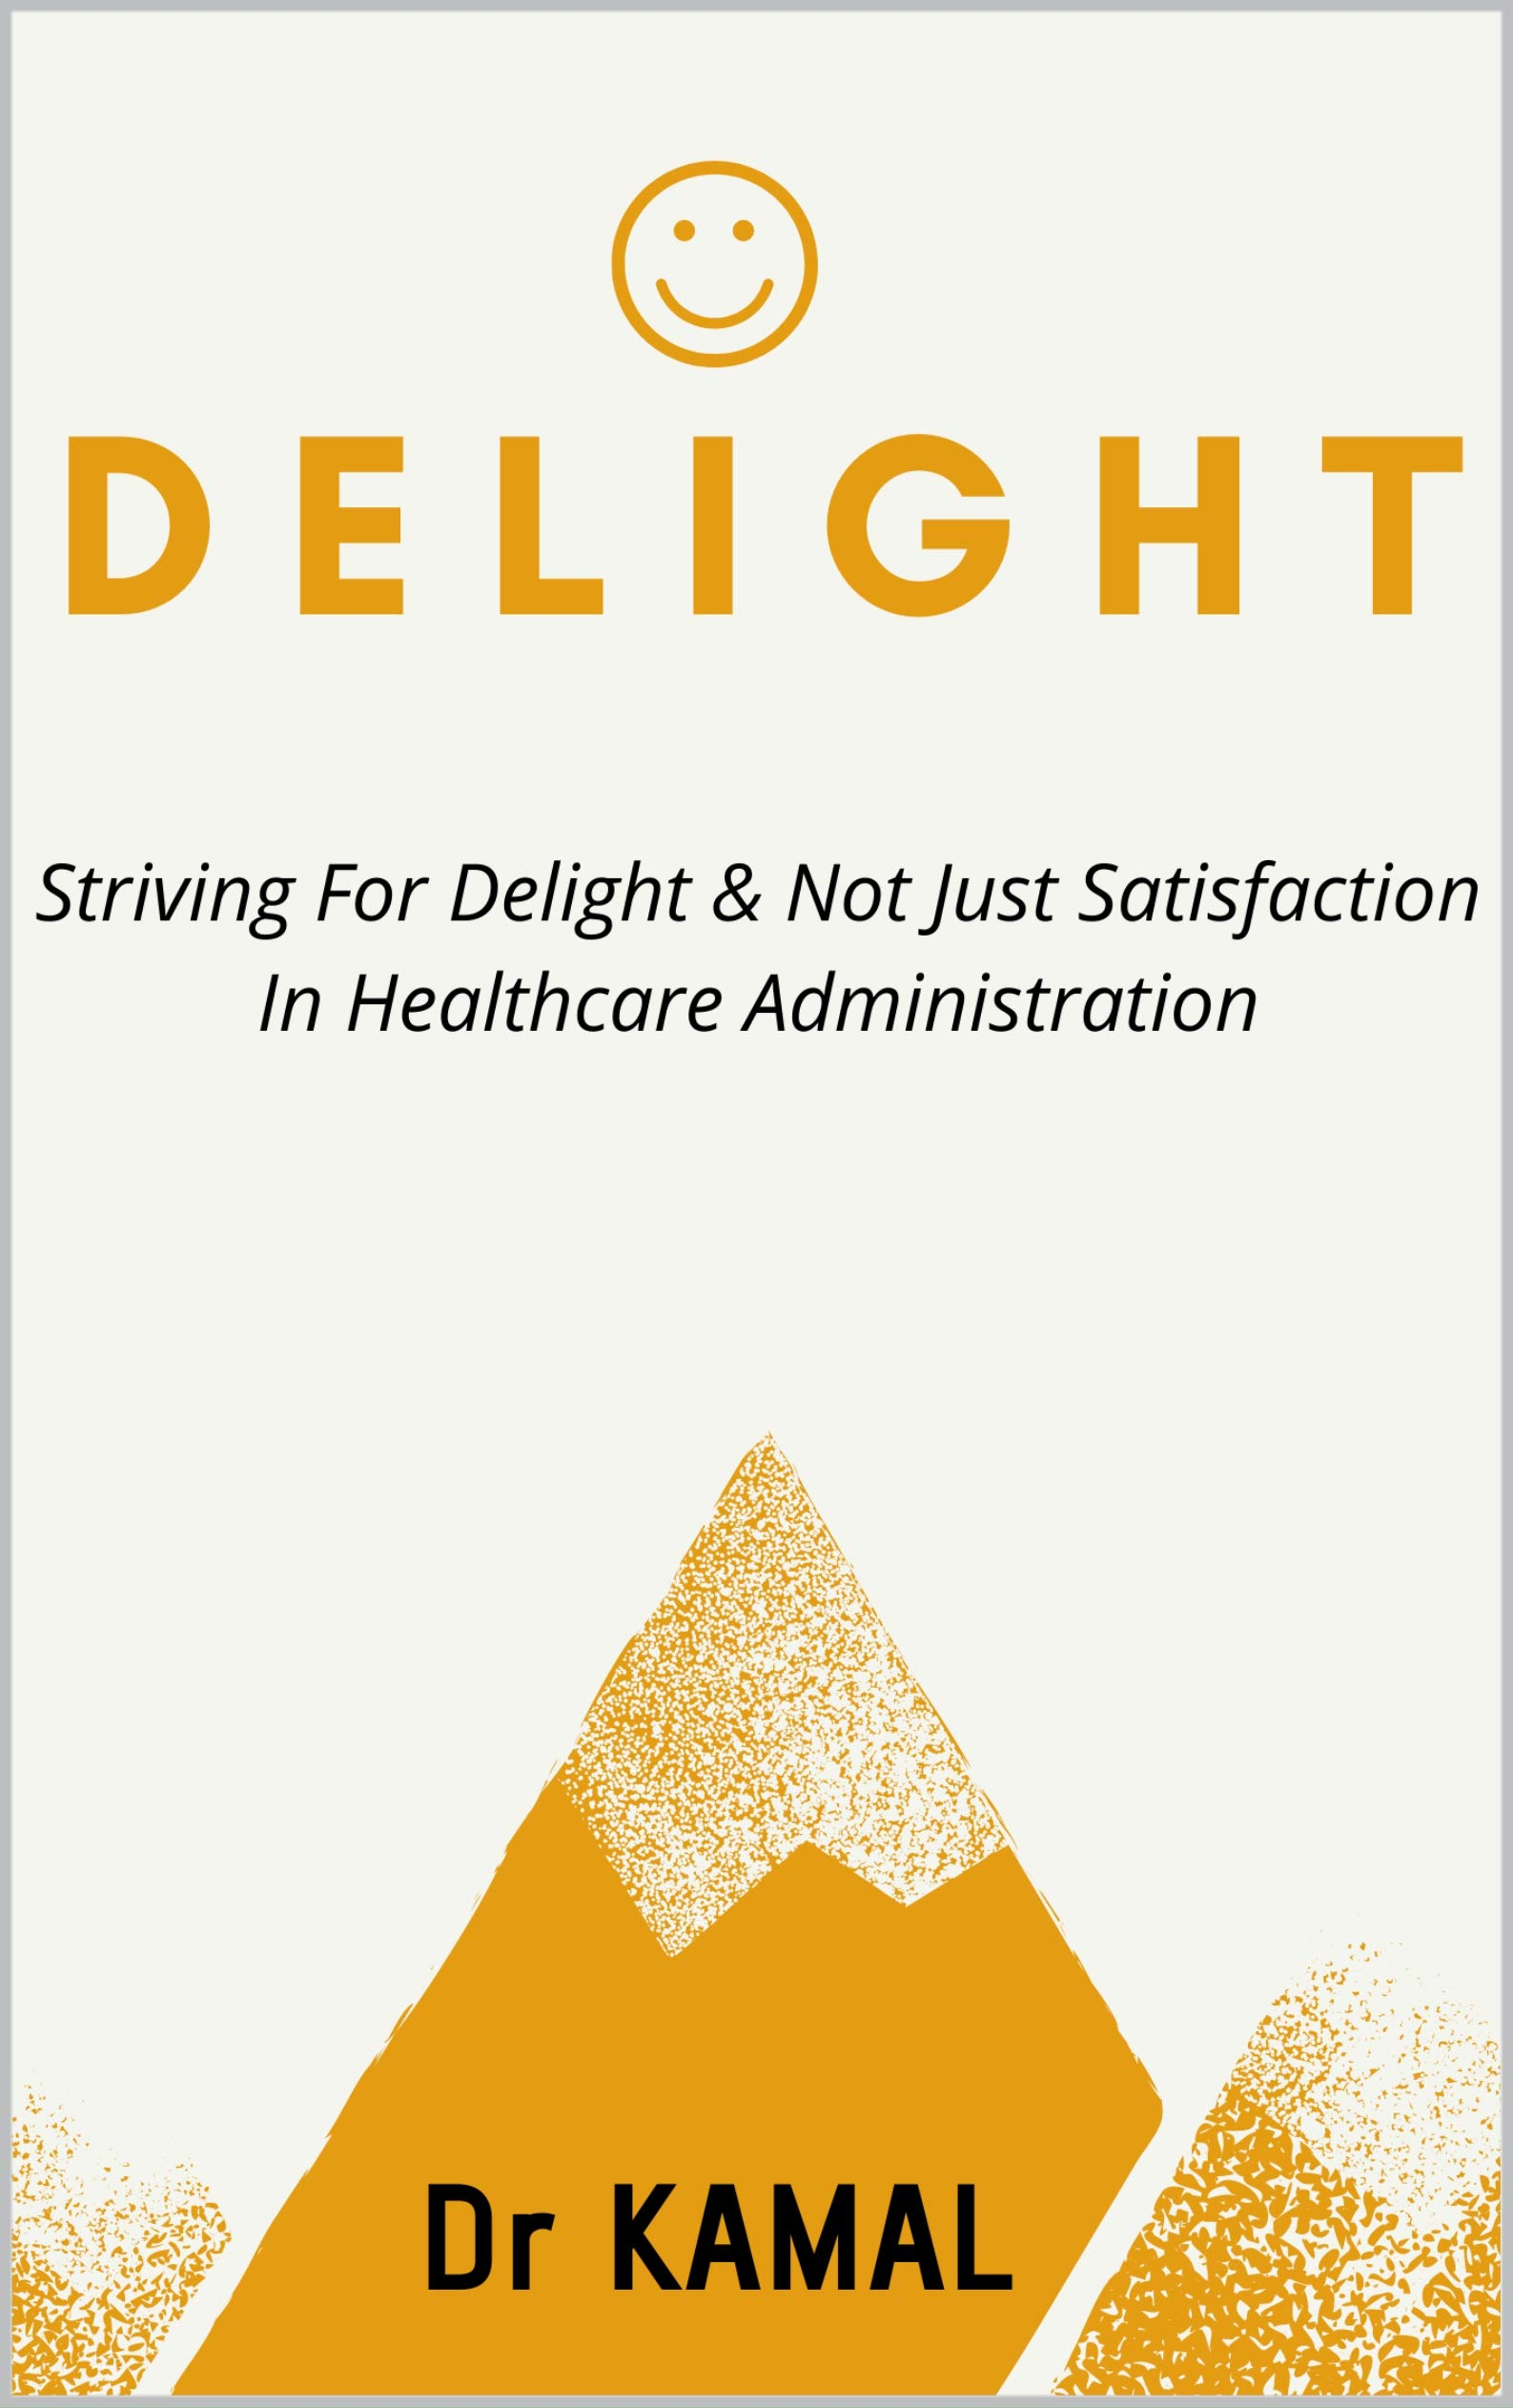 DELIGHT: STRIVING FOR DELIGHT & NOT JUST SATISFACTION IN HEALTHCARE ADMINISTRATION